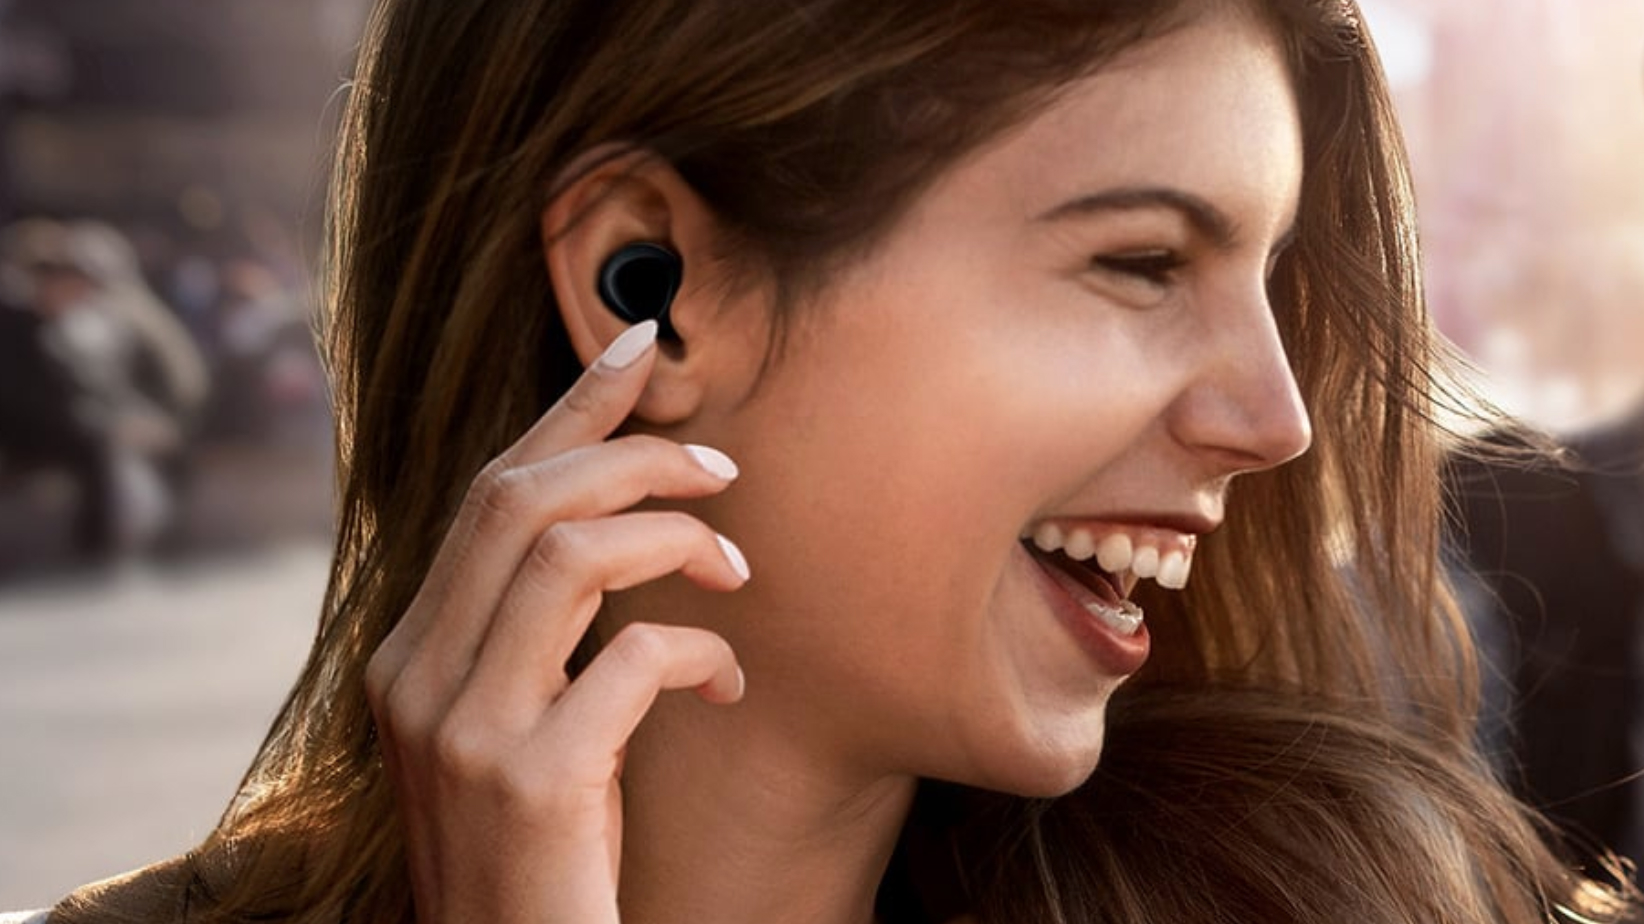 The cheapest Samsung Galaxy Buds prices, deals and sales in April 2019